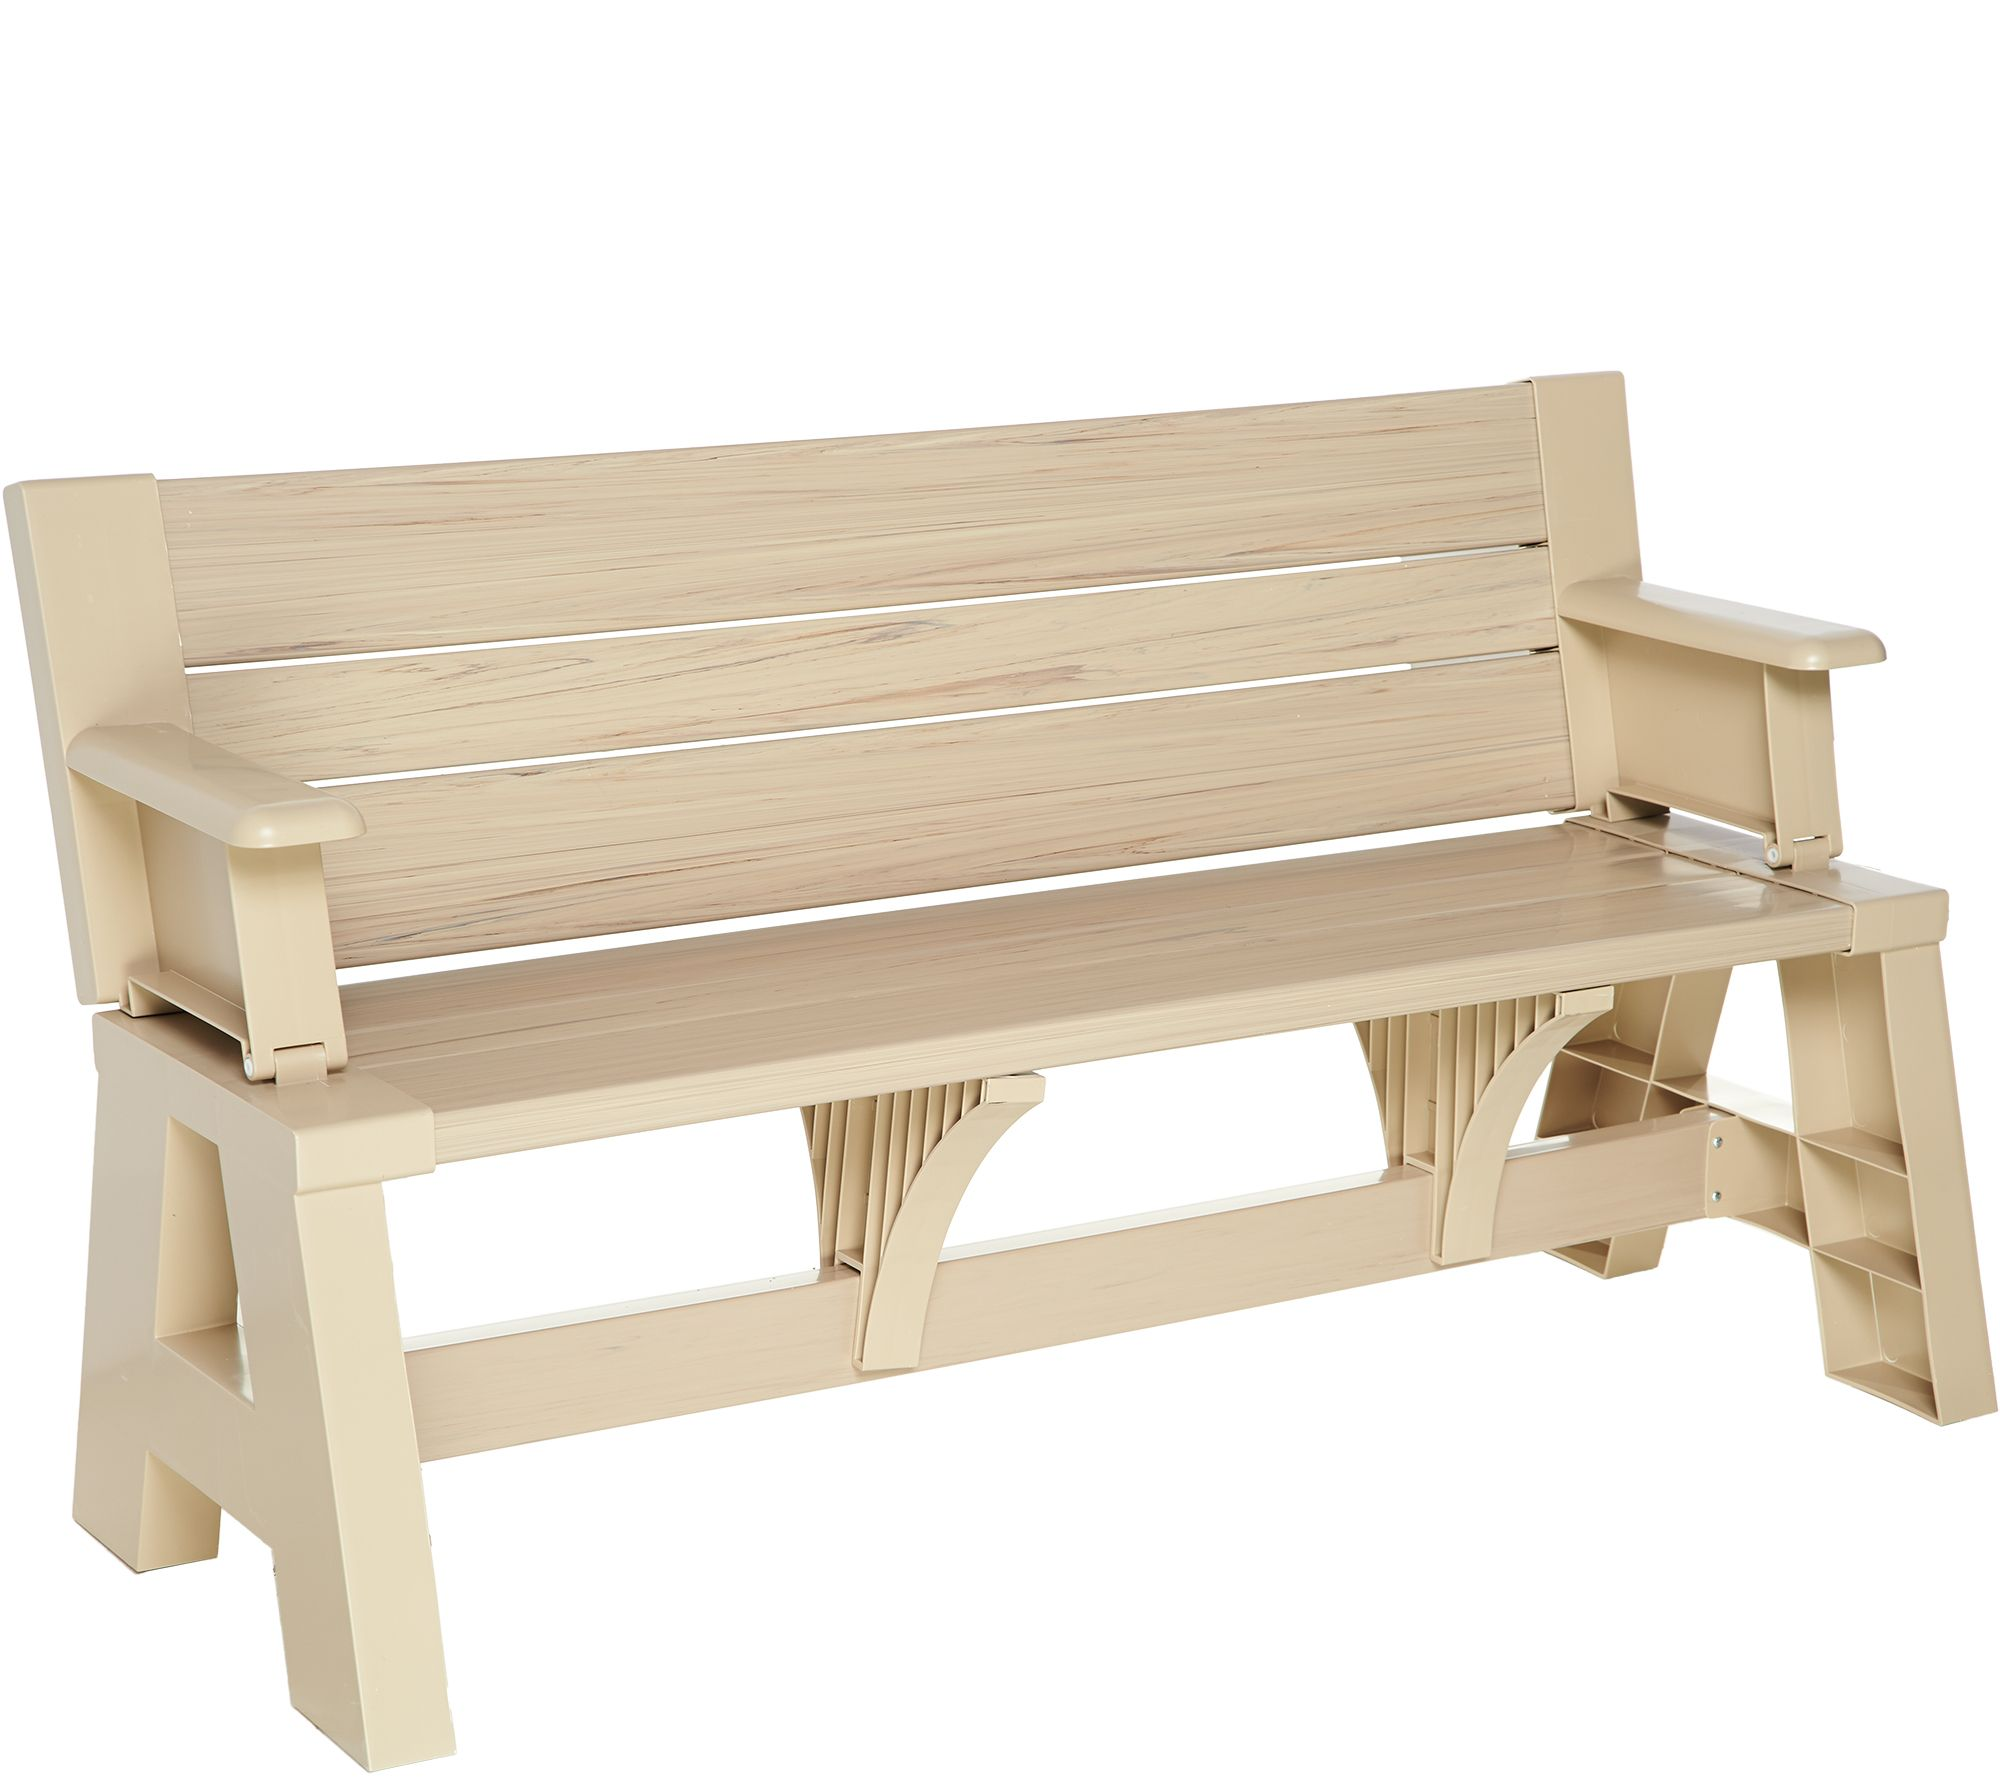 Wooden moon chairs - Convert A Bench Faux Wood Outdoor 2 In 1 Bench To